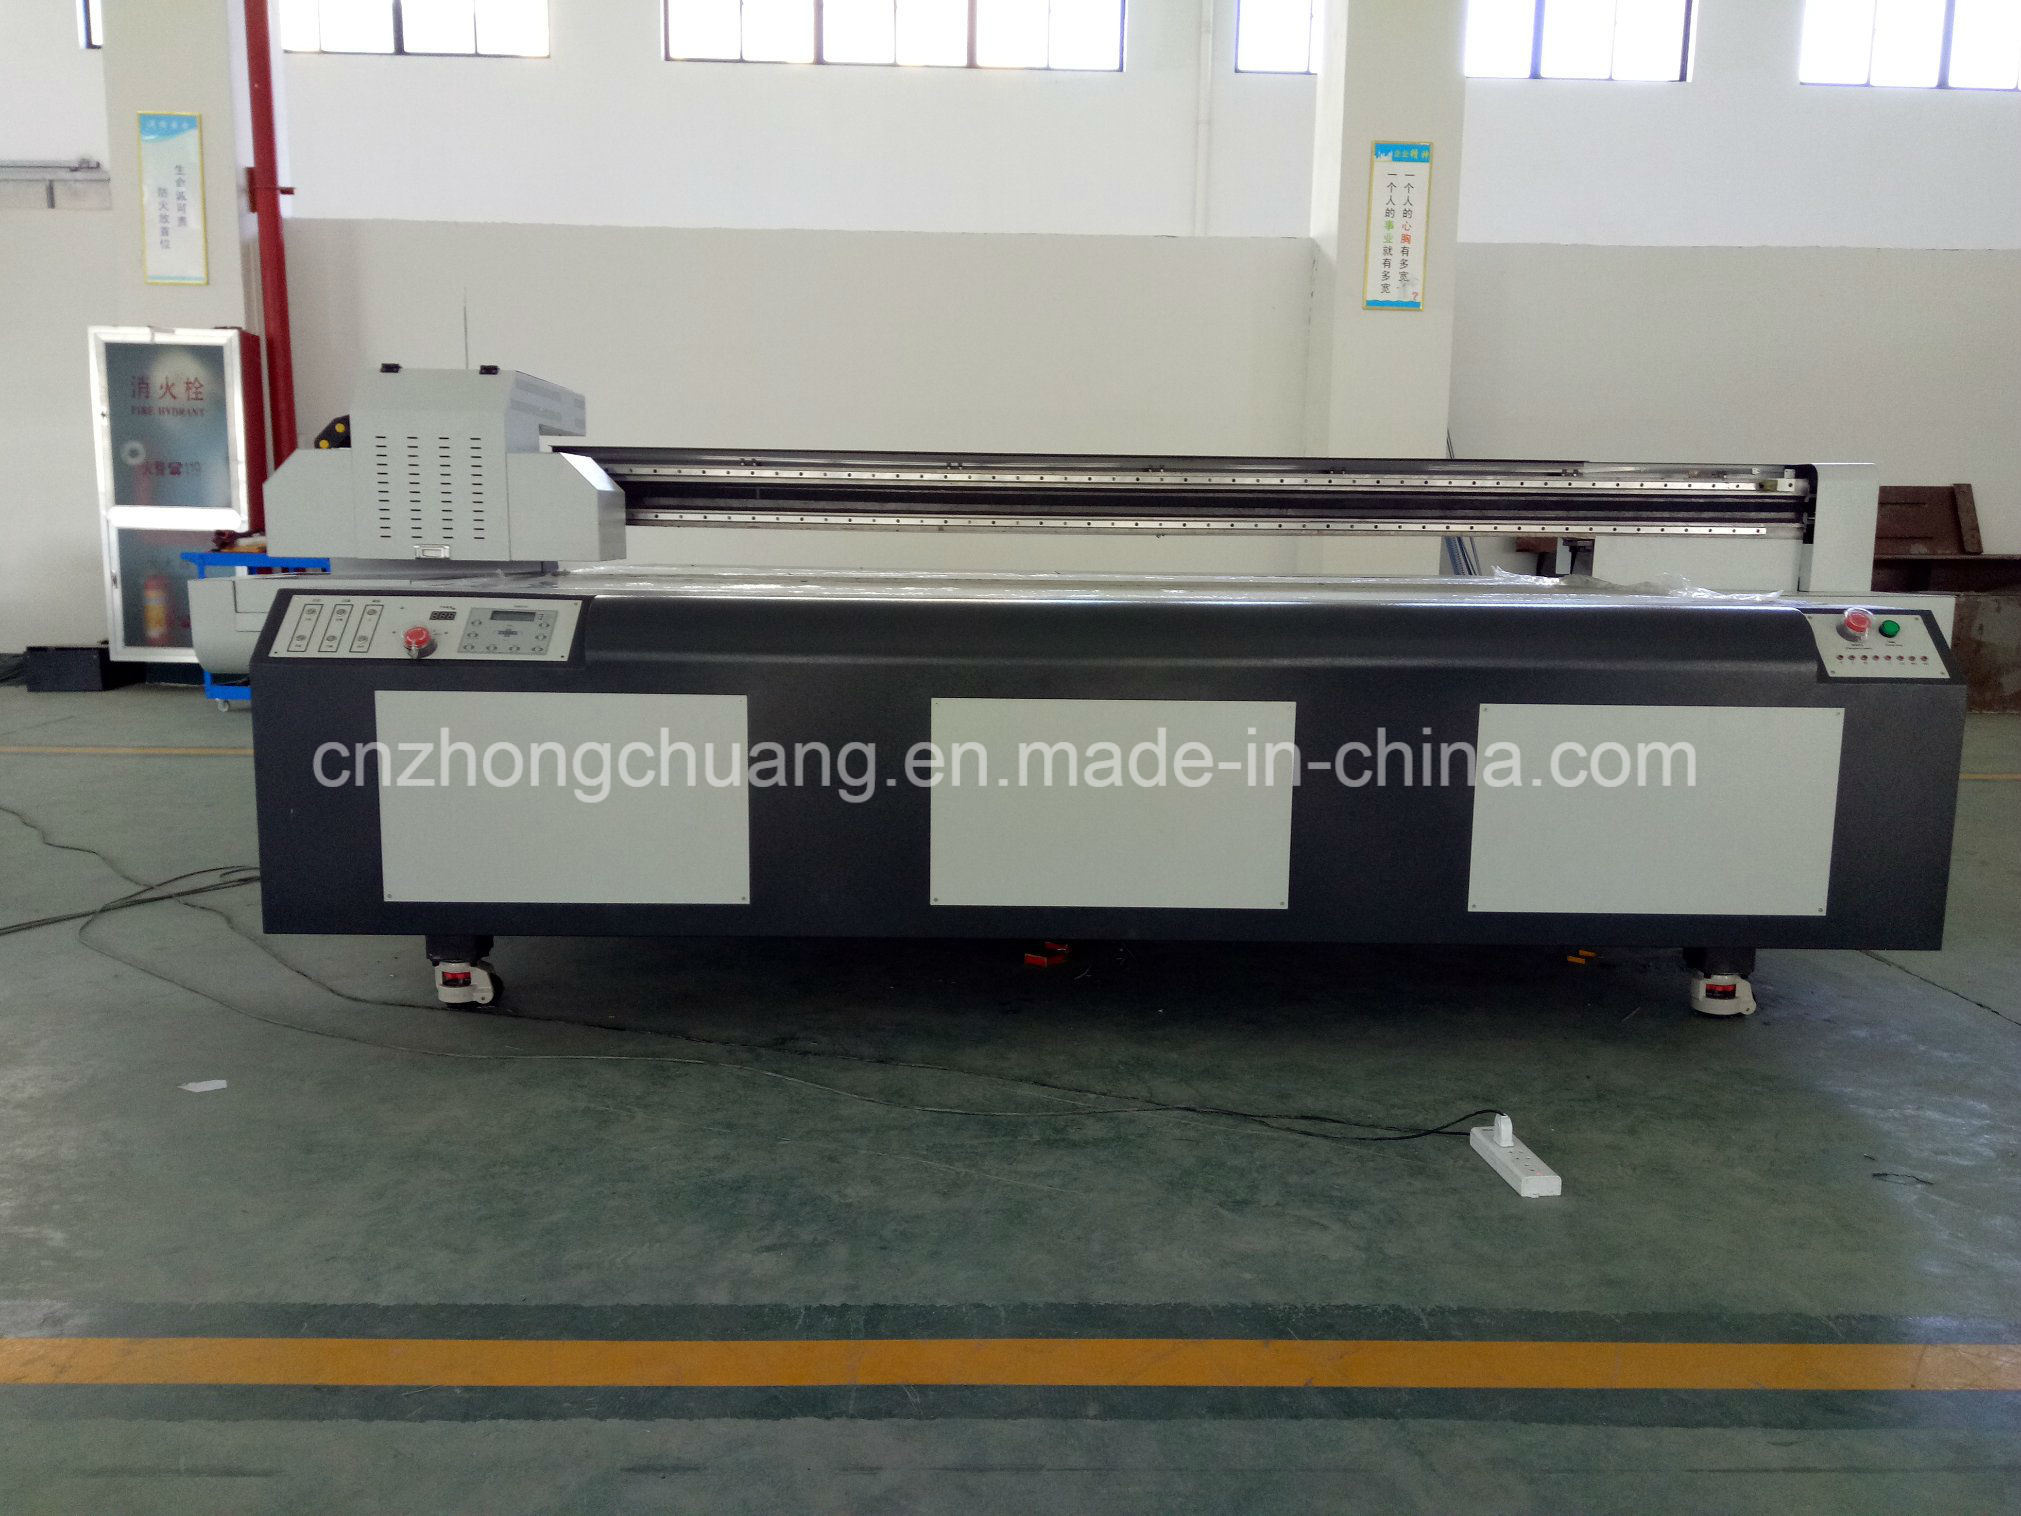 2017 Latest UV Flatbed Printer for Ceramic/ Acrylic/ PVC/ Textiles